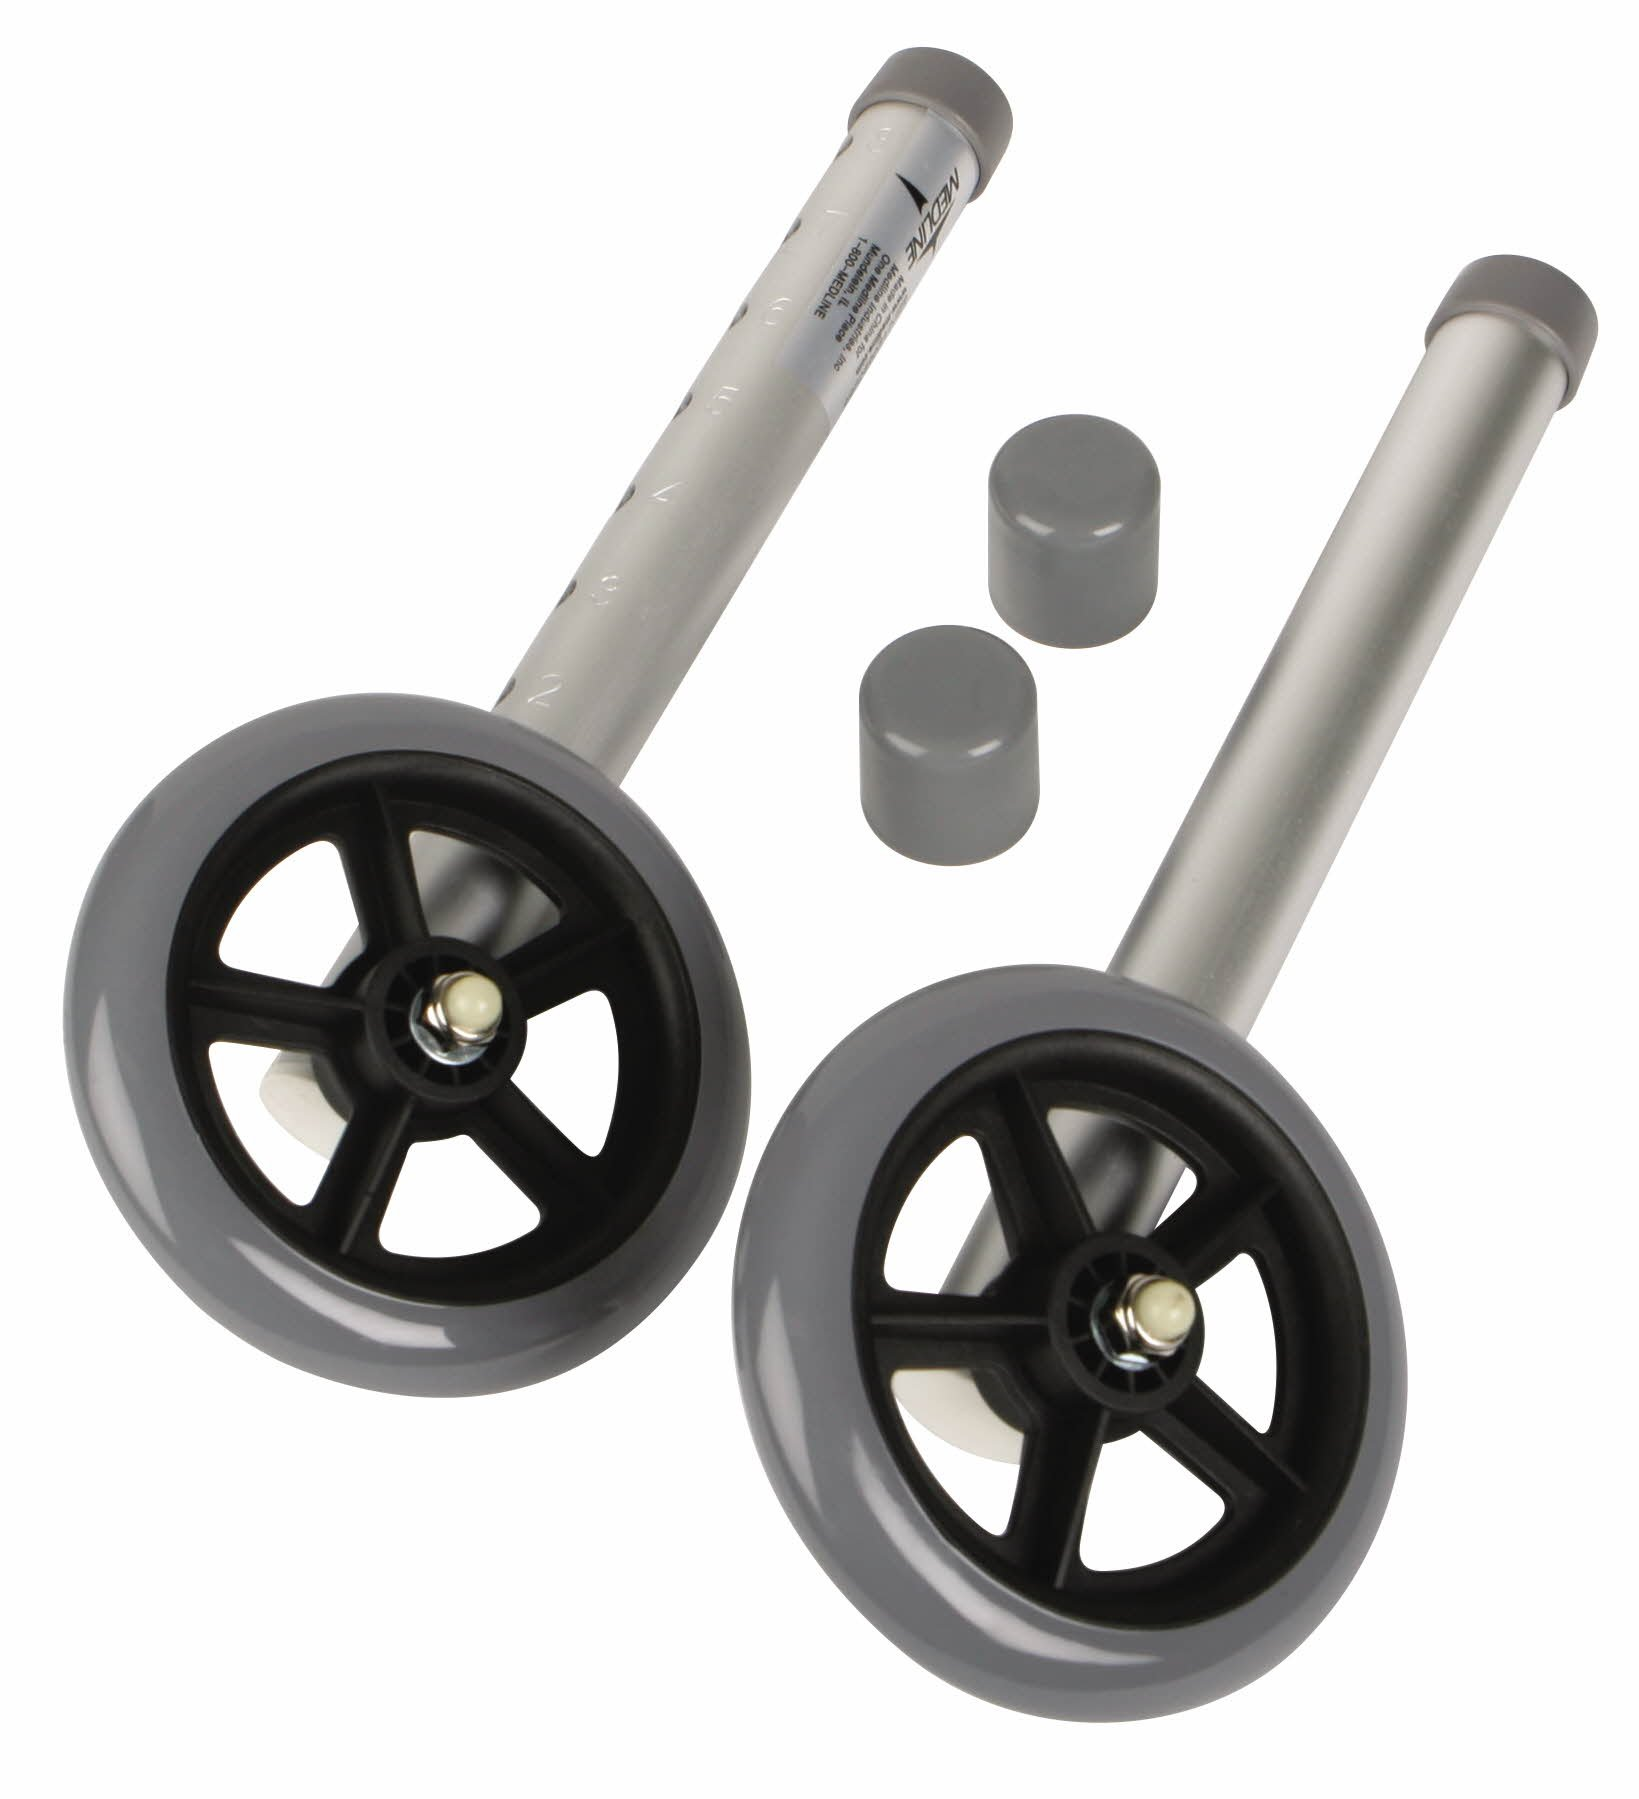 Medline Walker Replacement Casters, 3 Inch